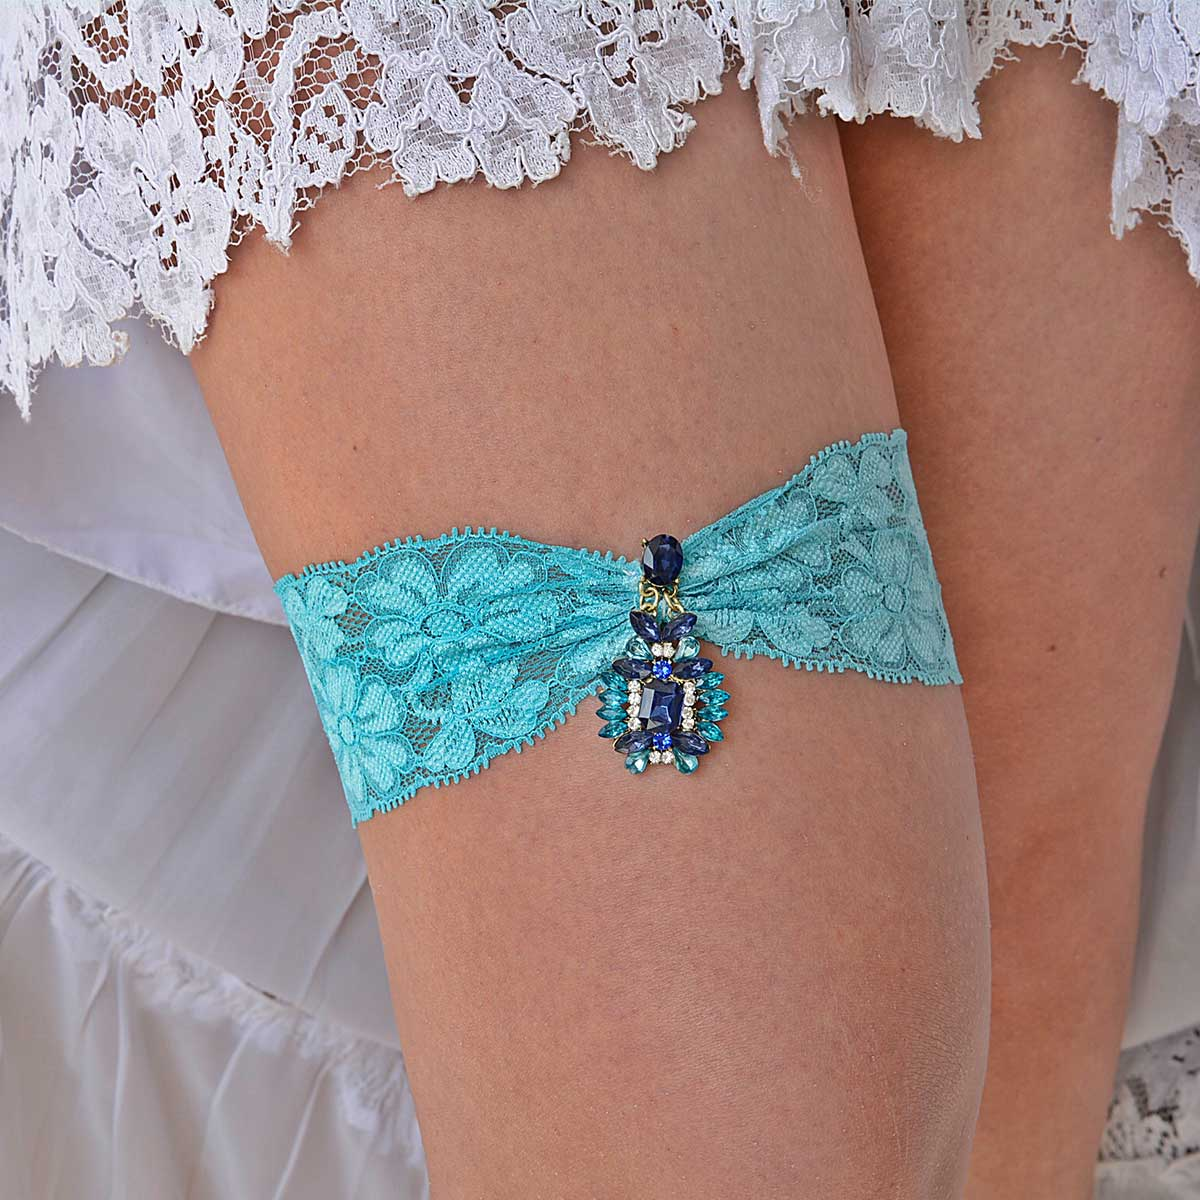 Wedding Garter Set With Navy Blue & Teal Blue Butterfly Jewel